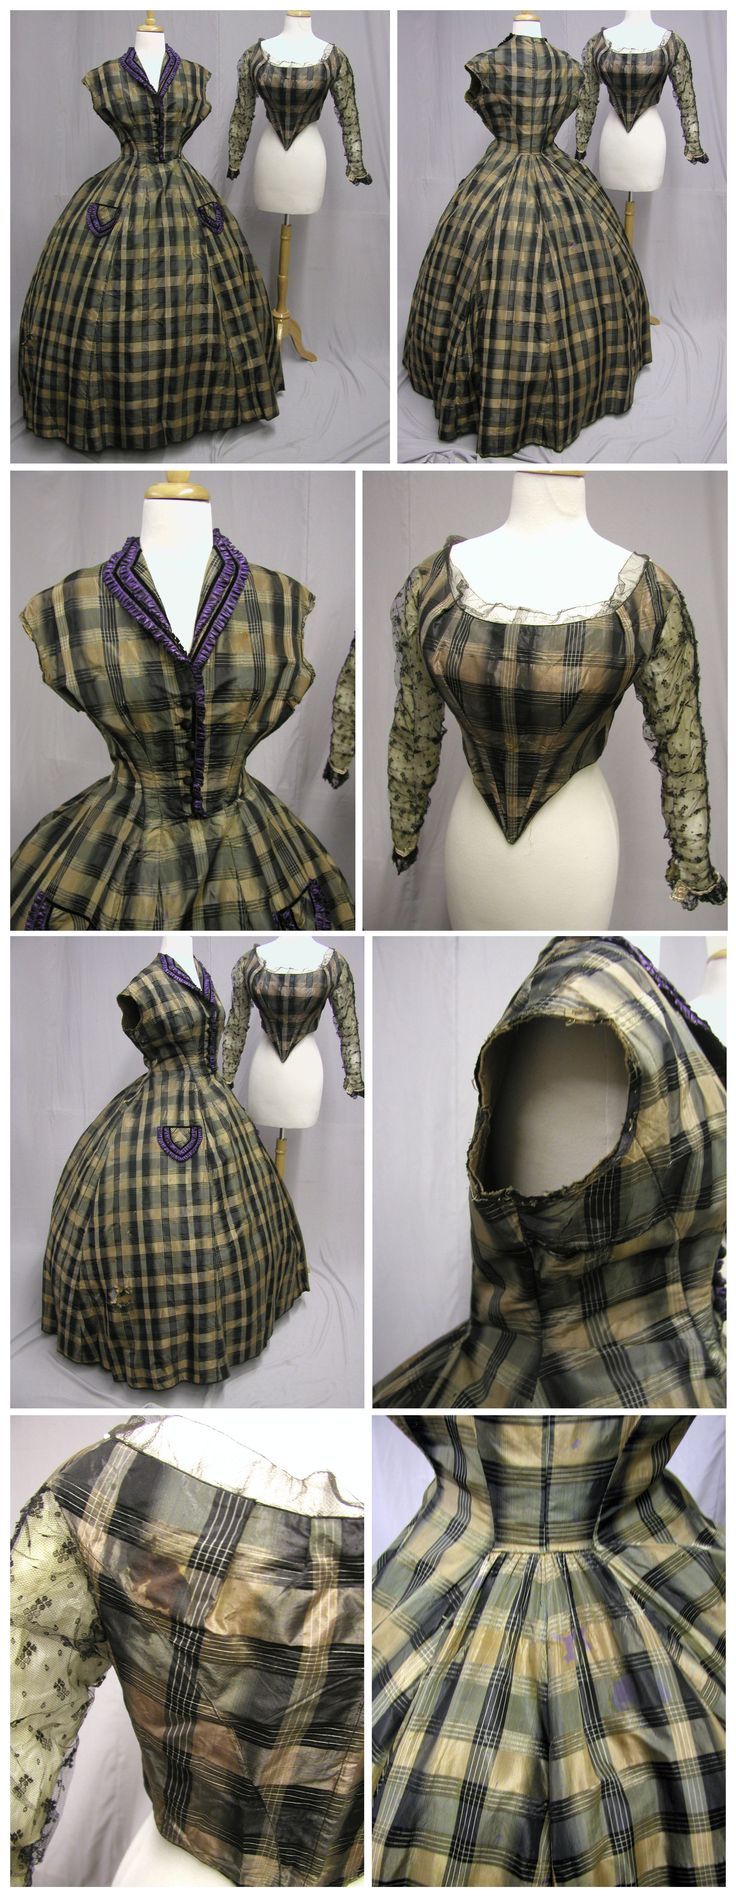 1860's Silk Plaid Civil War Dress & Bodice Brown/Gray/Black. Originally created in the 1850's and recreated in the 1860's. Ebay:svpmeow1